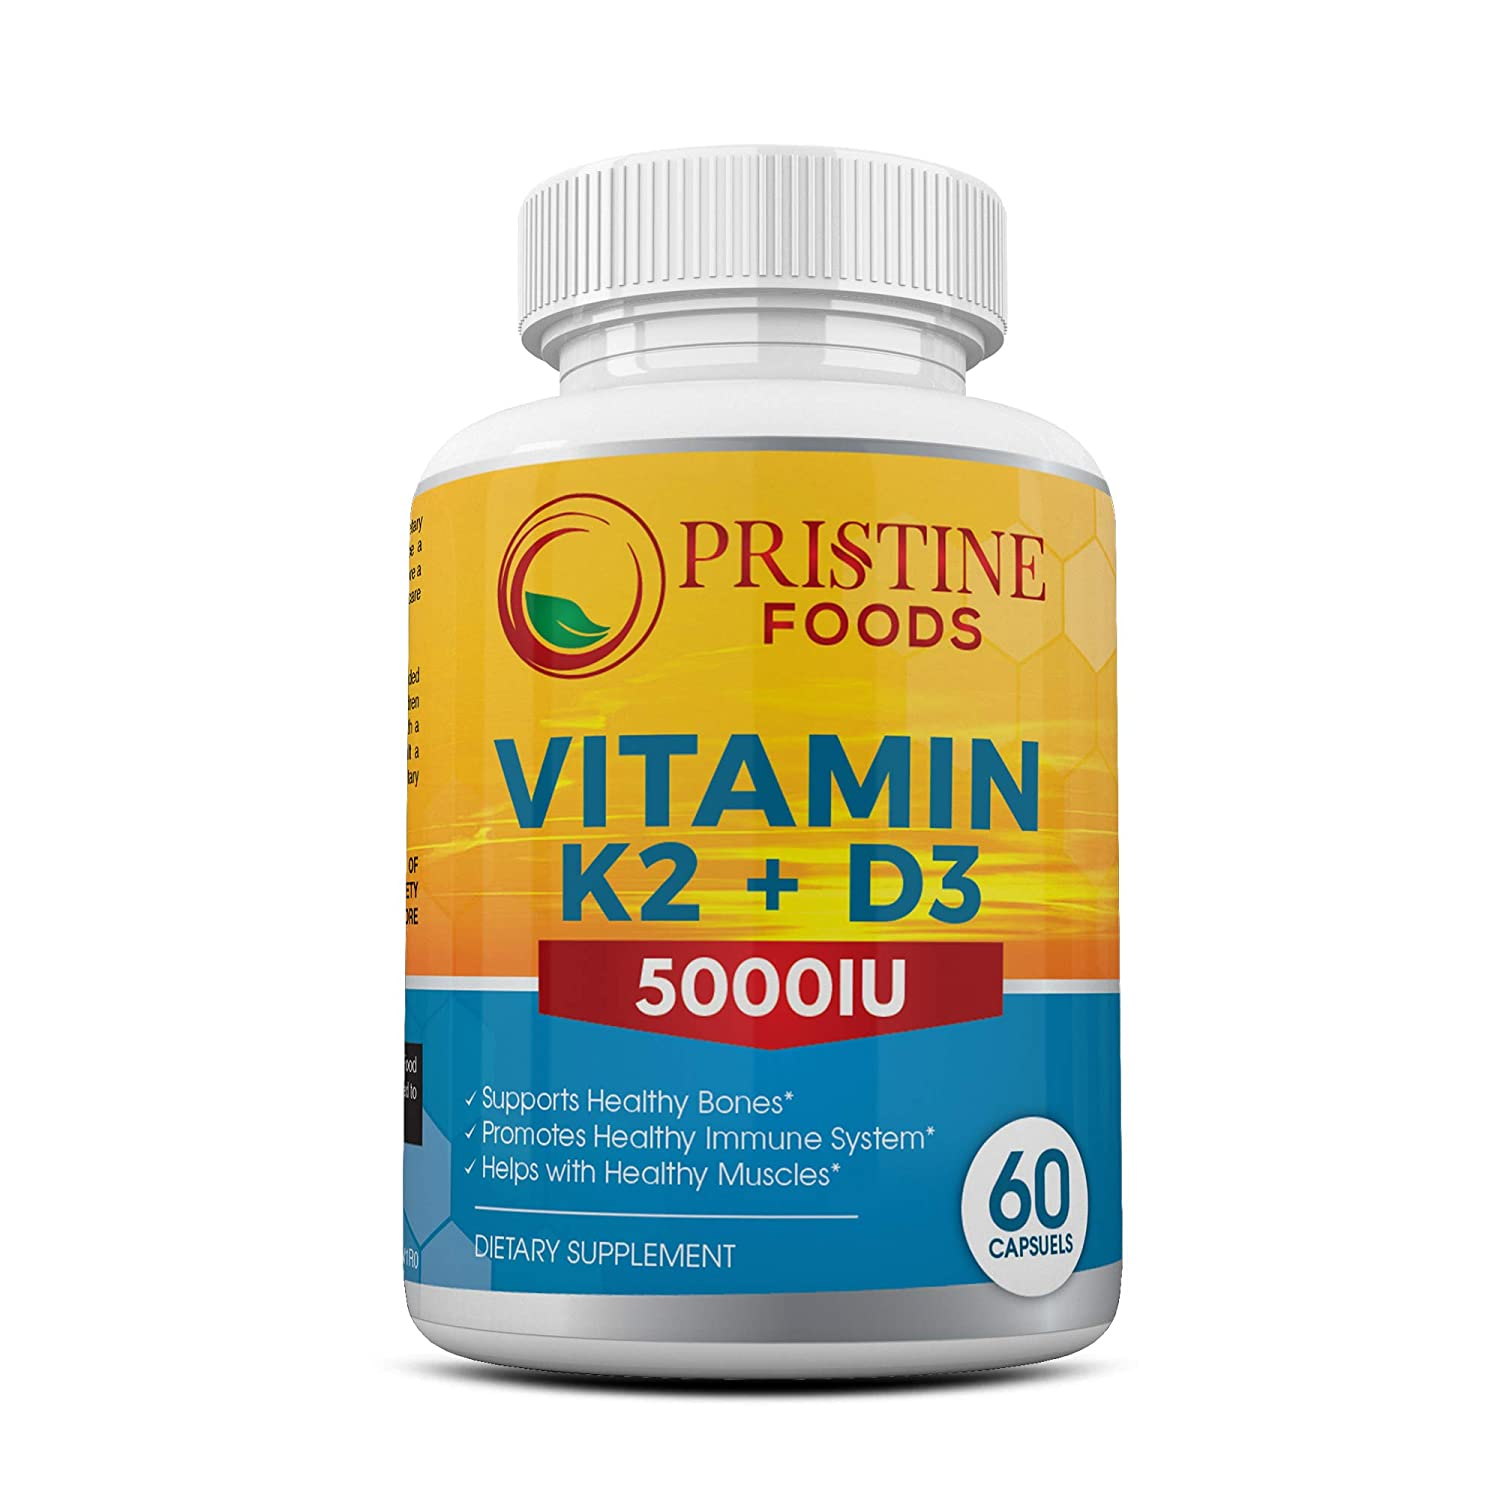 Vitamin D3 5000 IU with K2 (MK7) Formula. Bone & Heart Health Complex w/Superior Absorption. Immune, Bone & Muscle Support. 60 Capsules. Gluten, Dairy, Soy Free, Non-GMO Made in the USA Pristine Foods